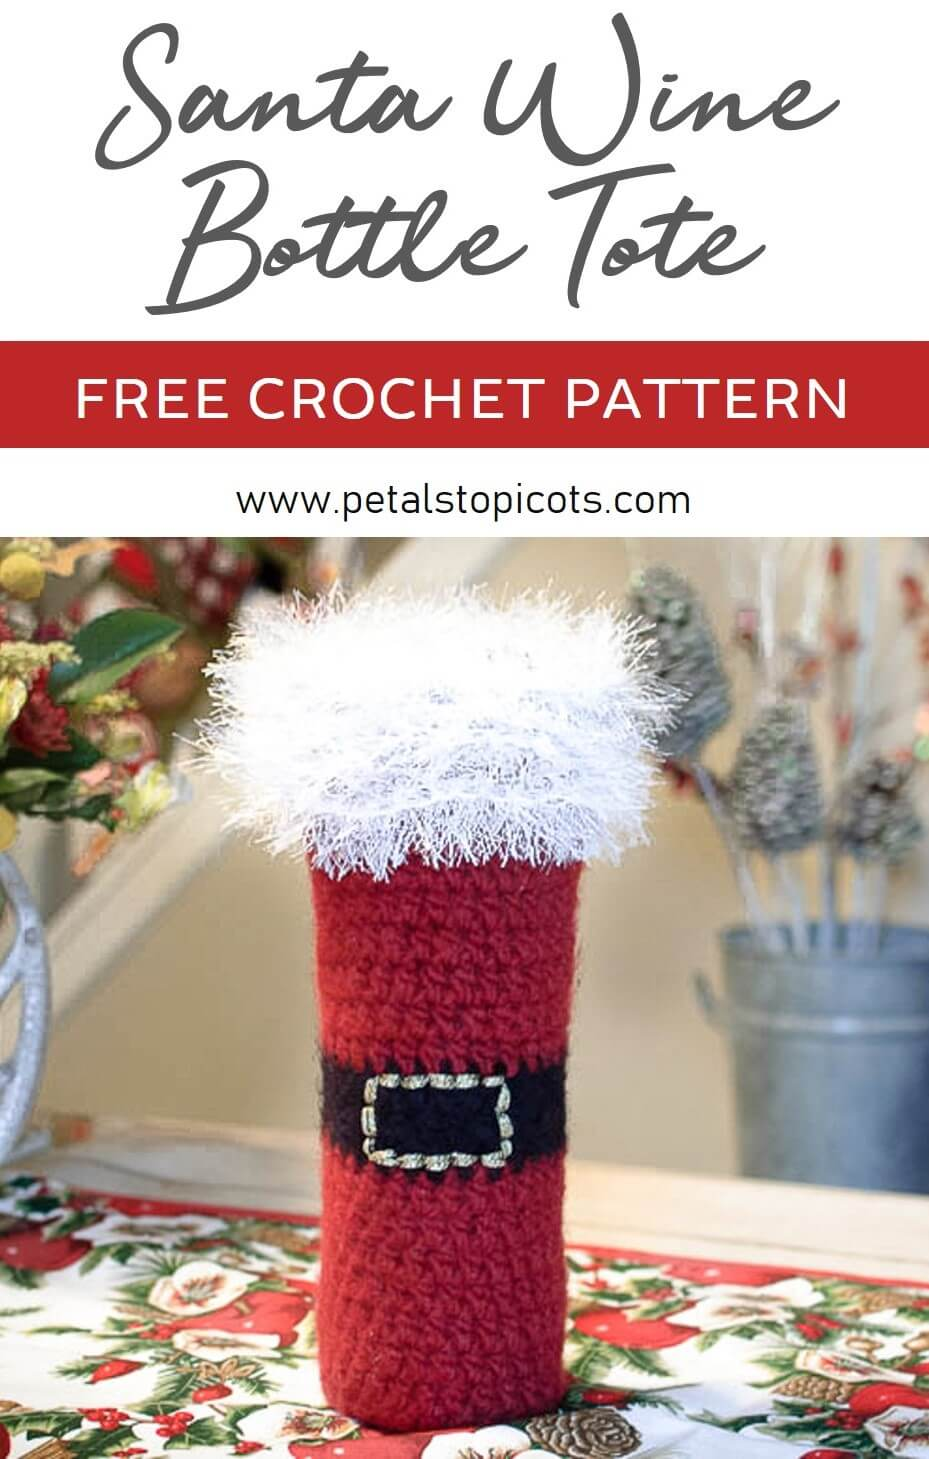 Get in the festive spirit with this Felted Santa Wine Bottle Tote Crochet Pattern ... perfect for toting a bottle to your next holiday gathering or to give as a gift. #petalstopicots